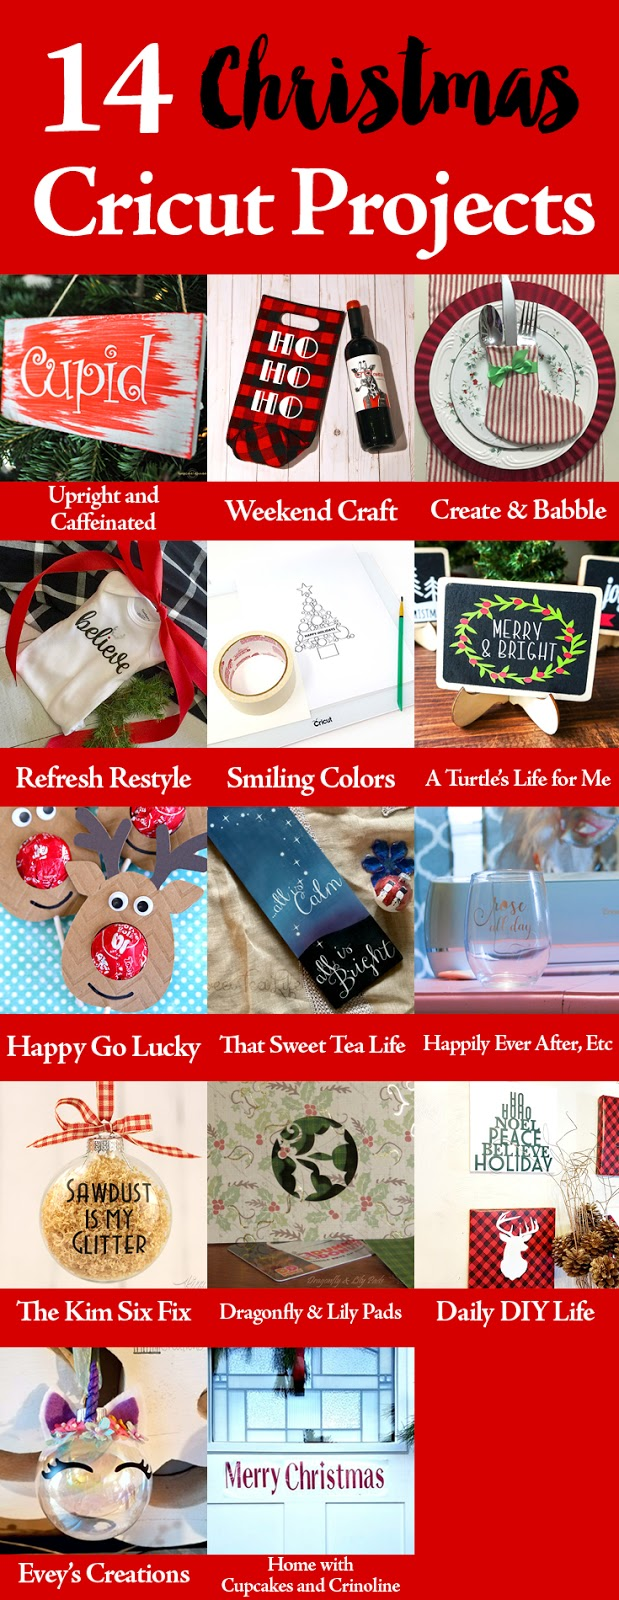 Craft & Create Cricut Challenge 14 Christmas Projects by incredible bloggers.